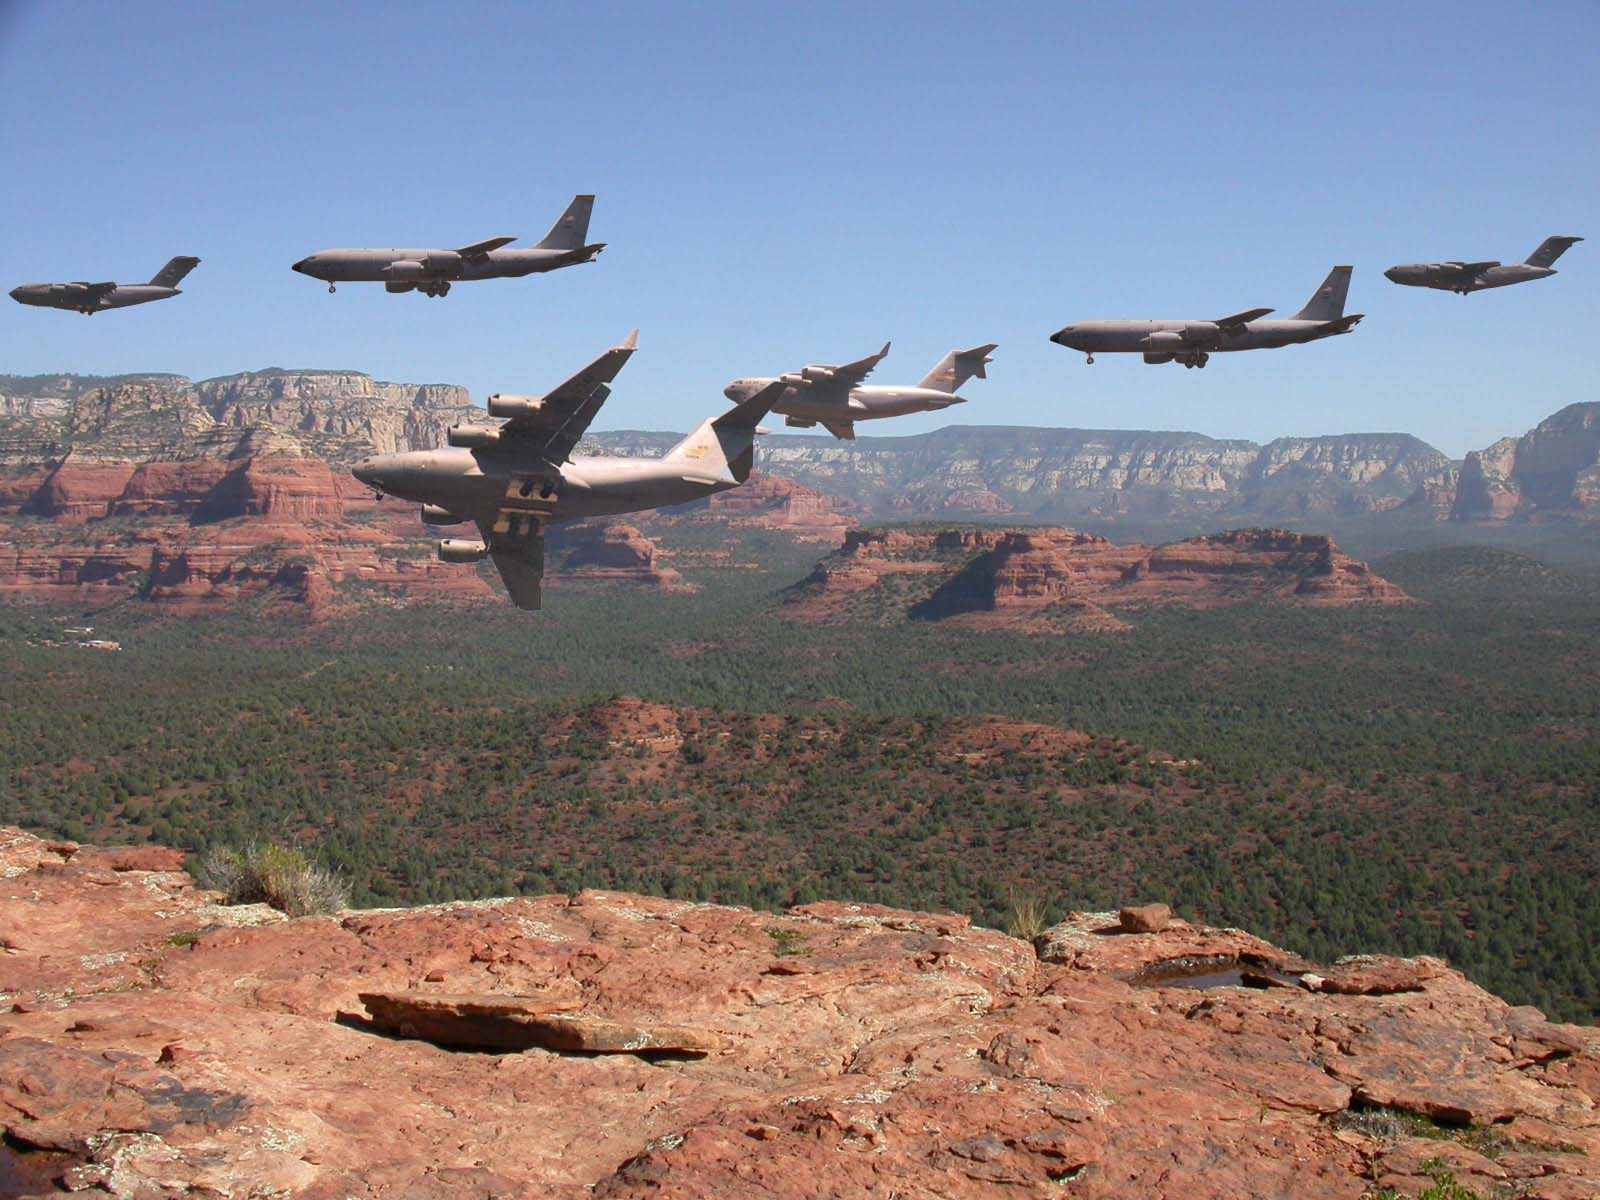 We hear that plans are to build a control tower at the Sedona Airport, which would allow increased jet service. How exciting it would be to hear that ...